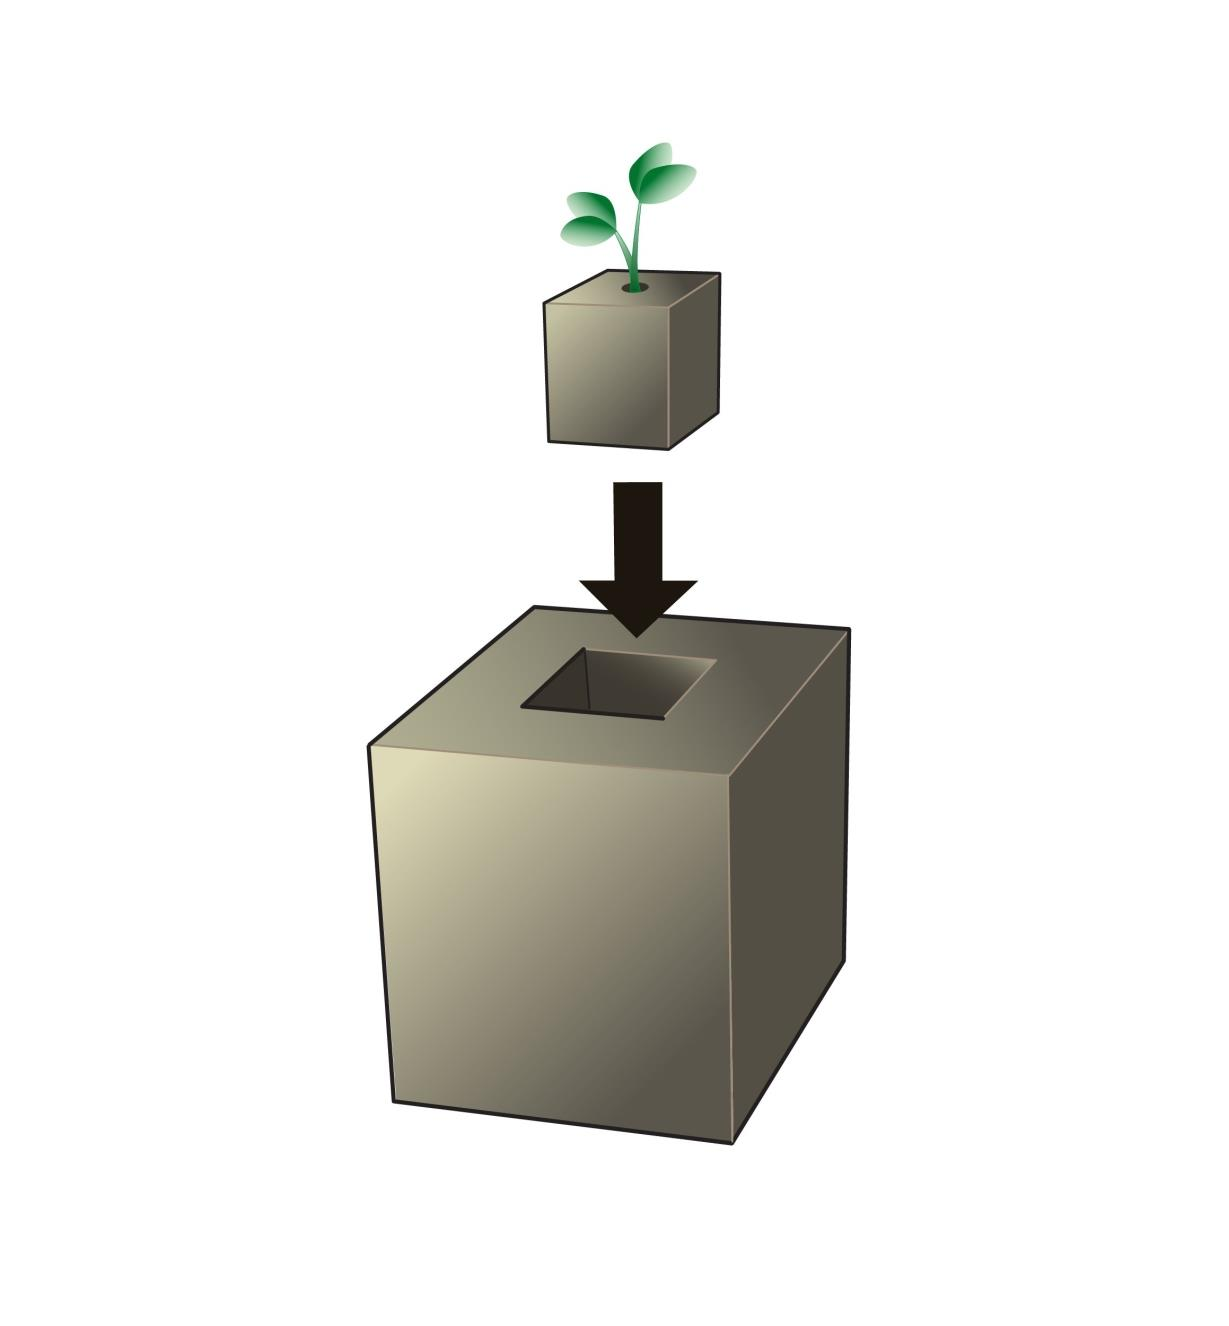 Illustration of seedling in soil cube being transferred into larger soil block made with soil block mold (sold separately).